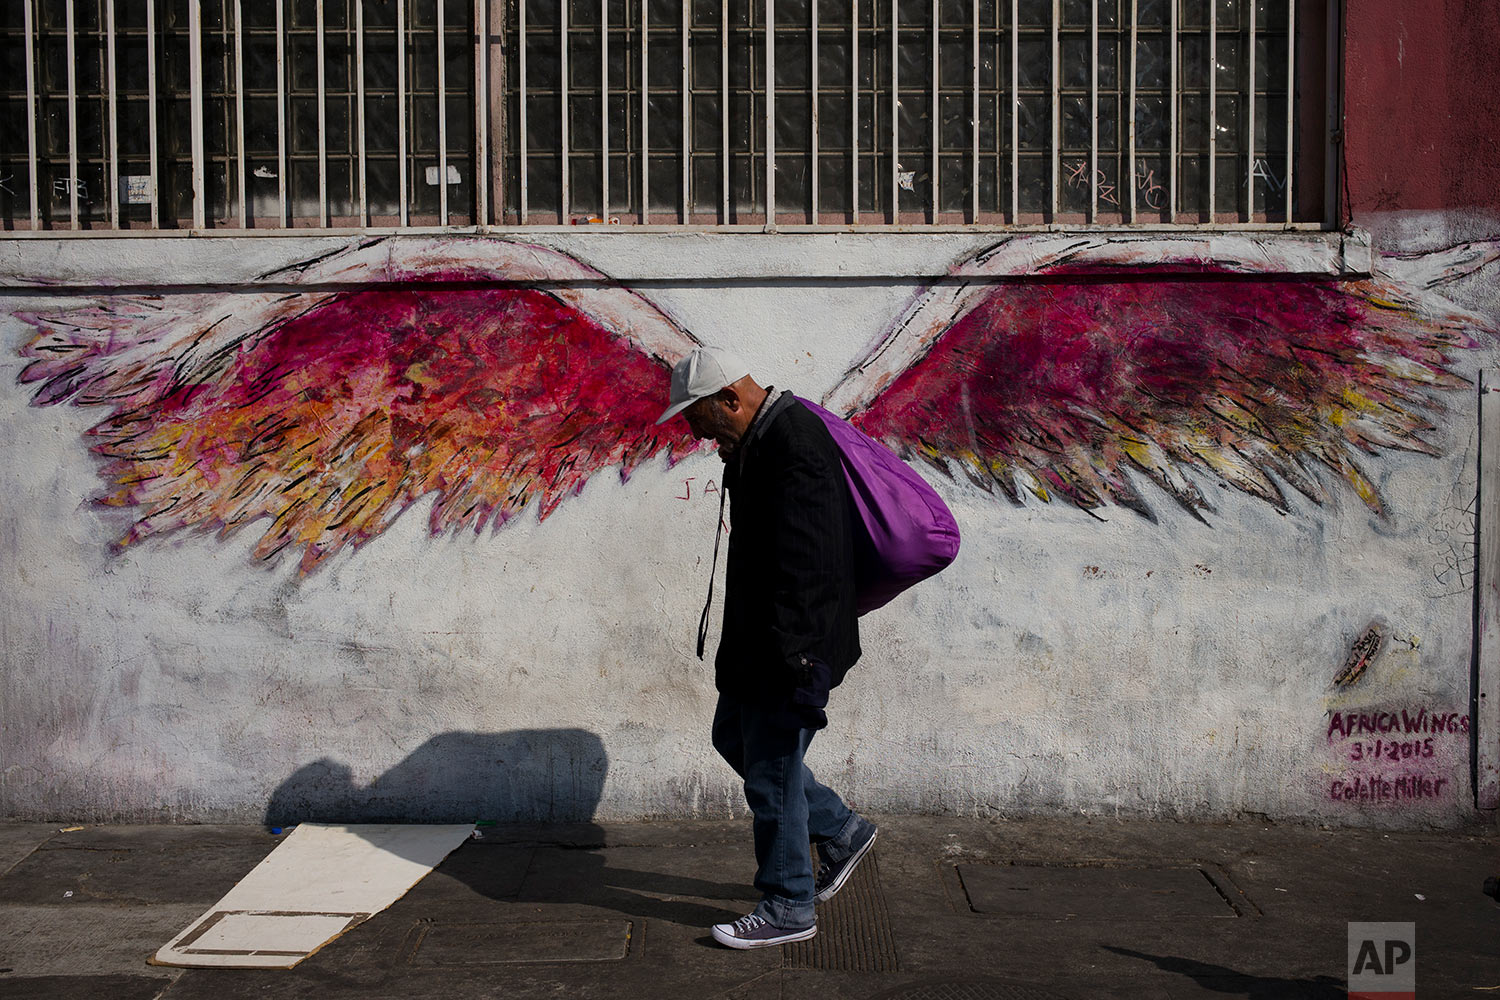 "A man walks past a mural of angel wings titled ""Africa Wings"" by artist Colette Miller in Los Angeles' Skid Row area, home to the nation's largest concentration of homeless people, Friday, Sept. 1, 2017. According to the annual count released in May by the Los Angeles Homeless Services Authority, Los Angeles County's homeless population has increased to 57,794, a 23 percent jump from last year's count. (AP Photo/Jae C. Hong)"